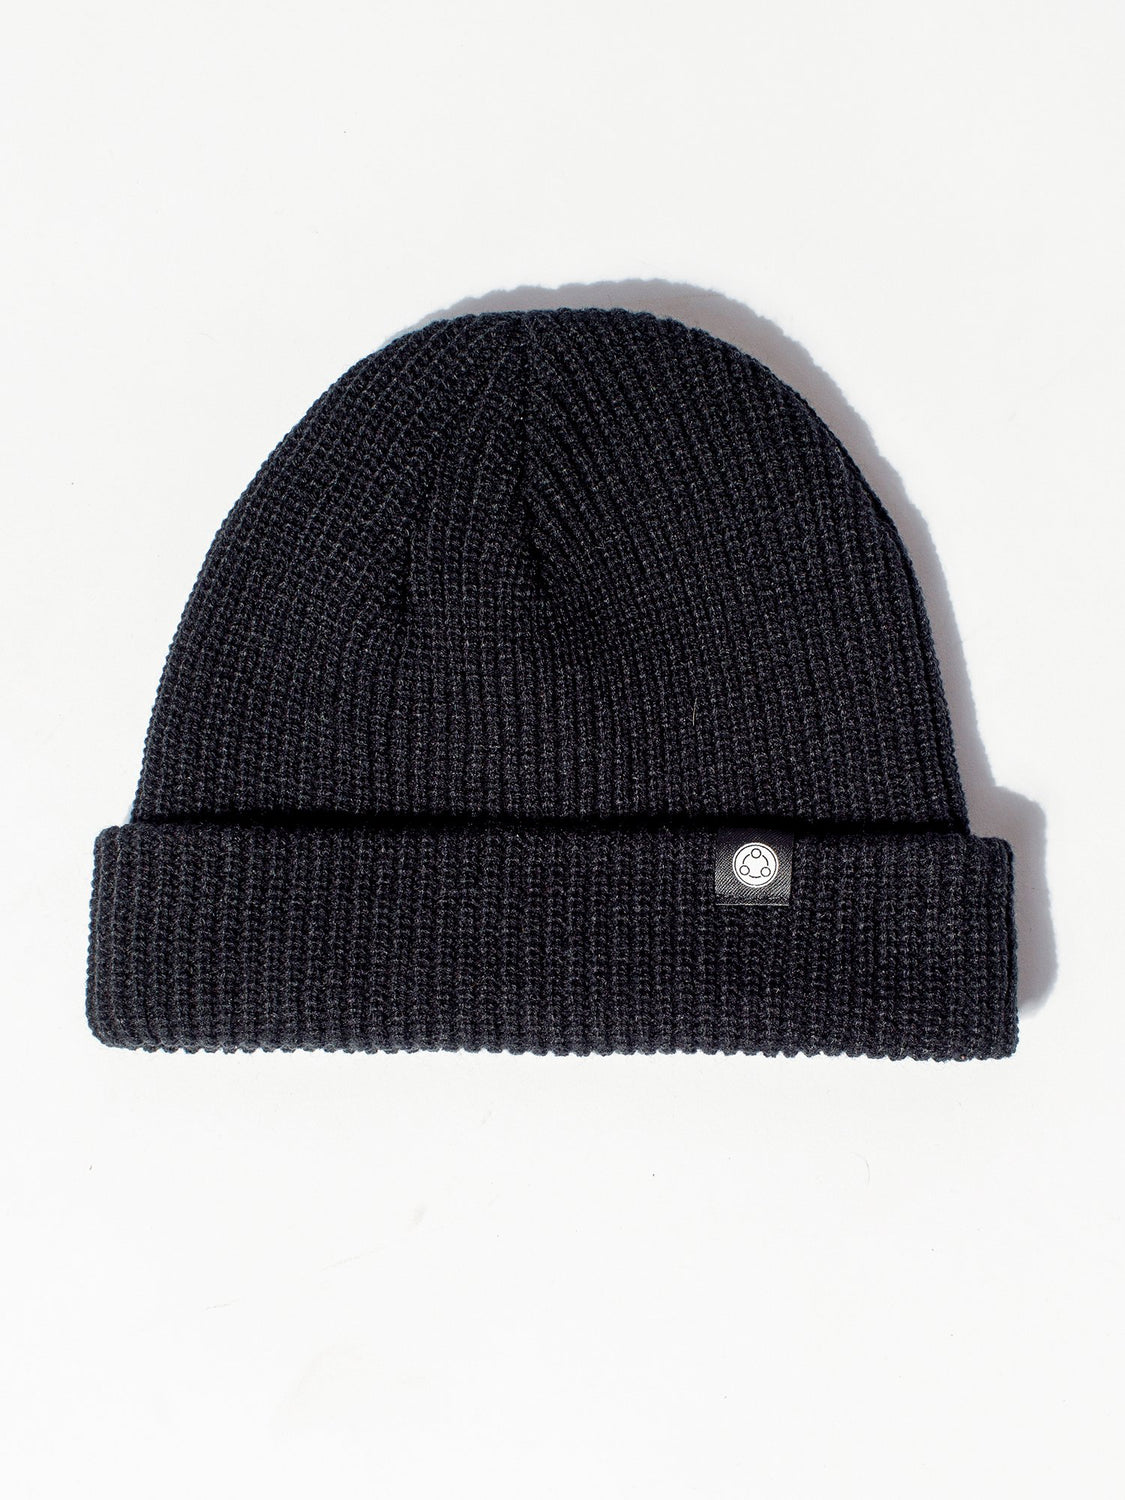 BROOKLYN BEANIE, BLACK